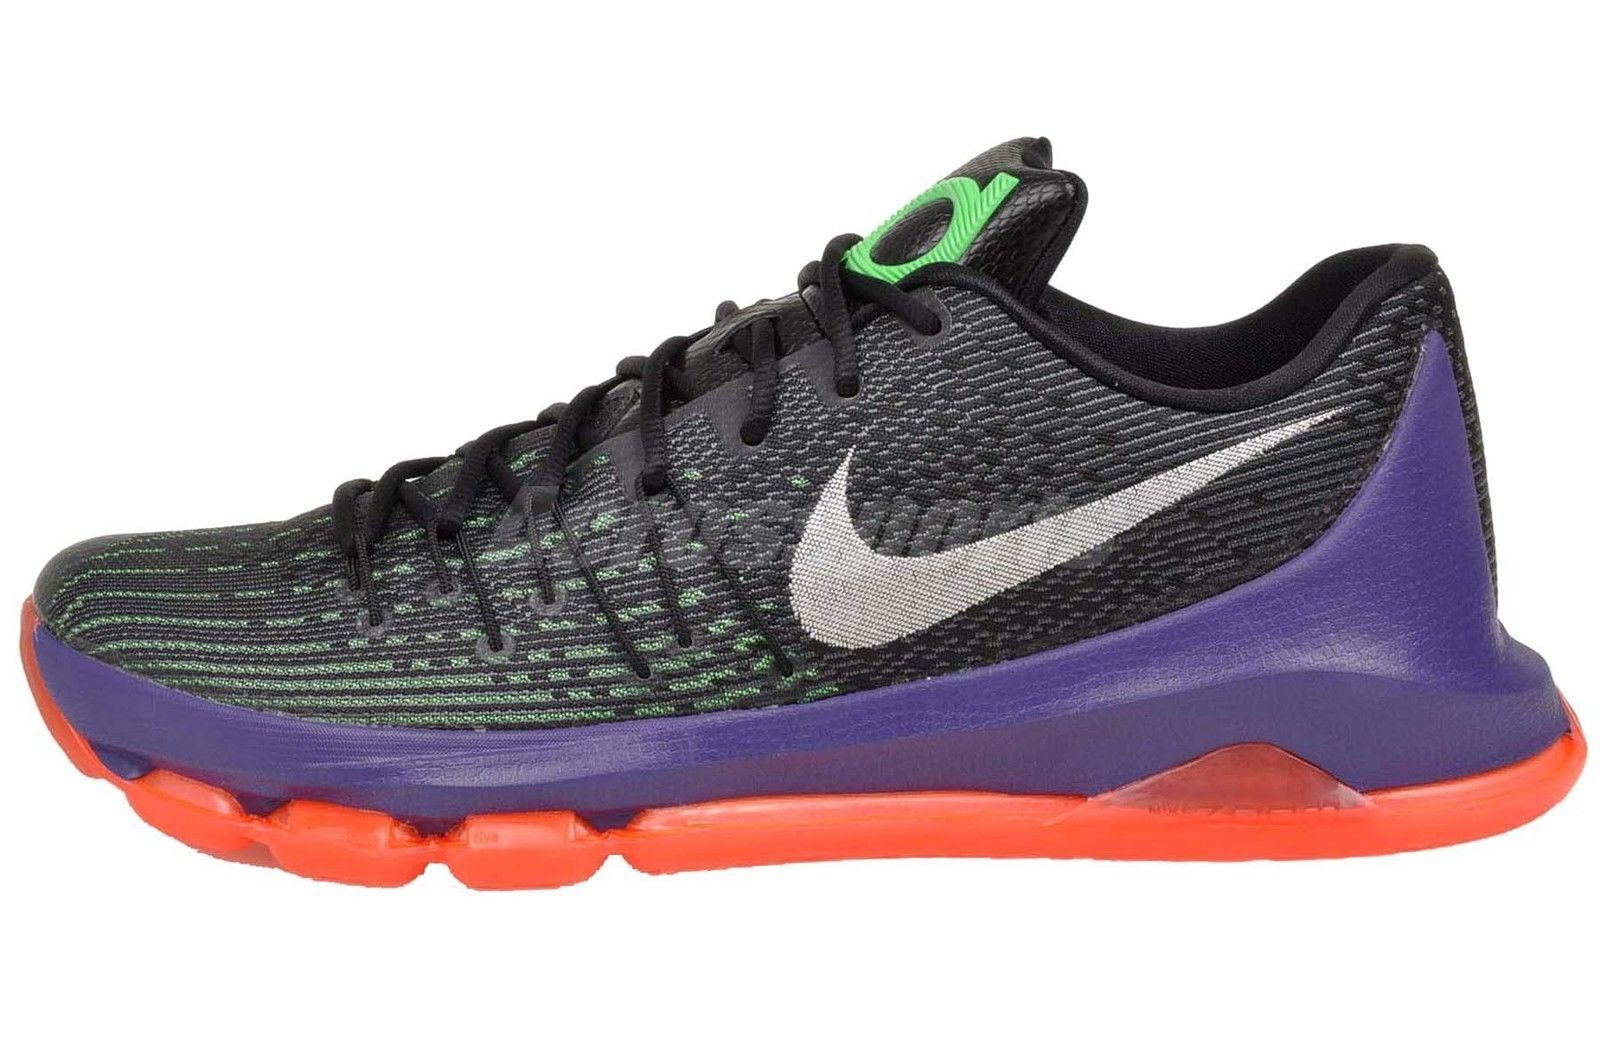 Nike KD 8 Mens Basketball Shoes Kevin Durant Sneakers sz 10&11 free shipping